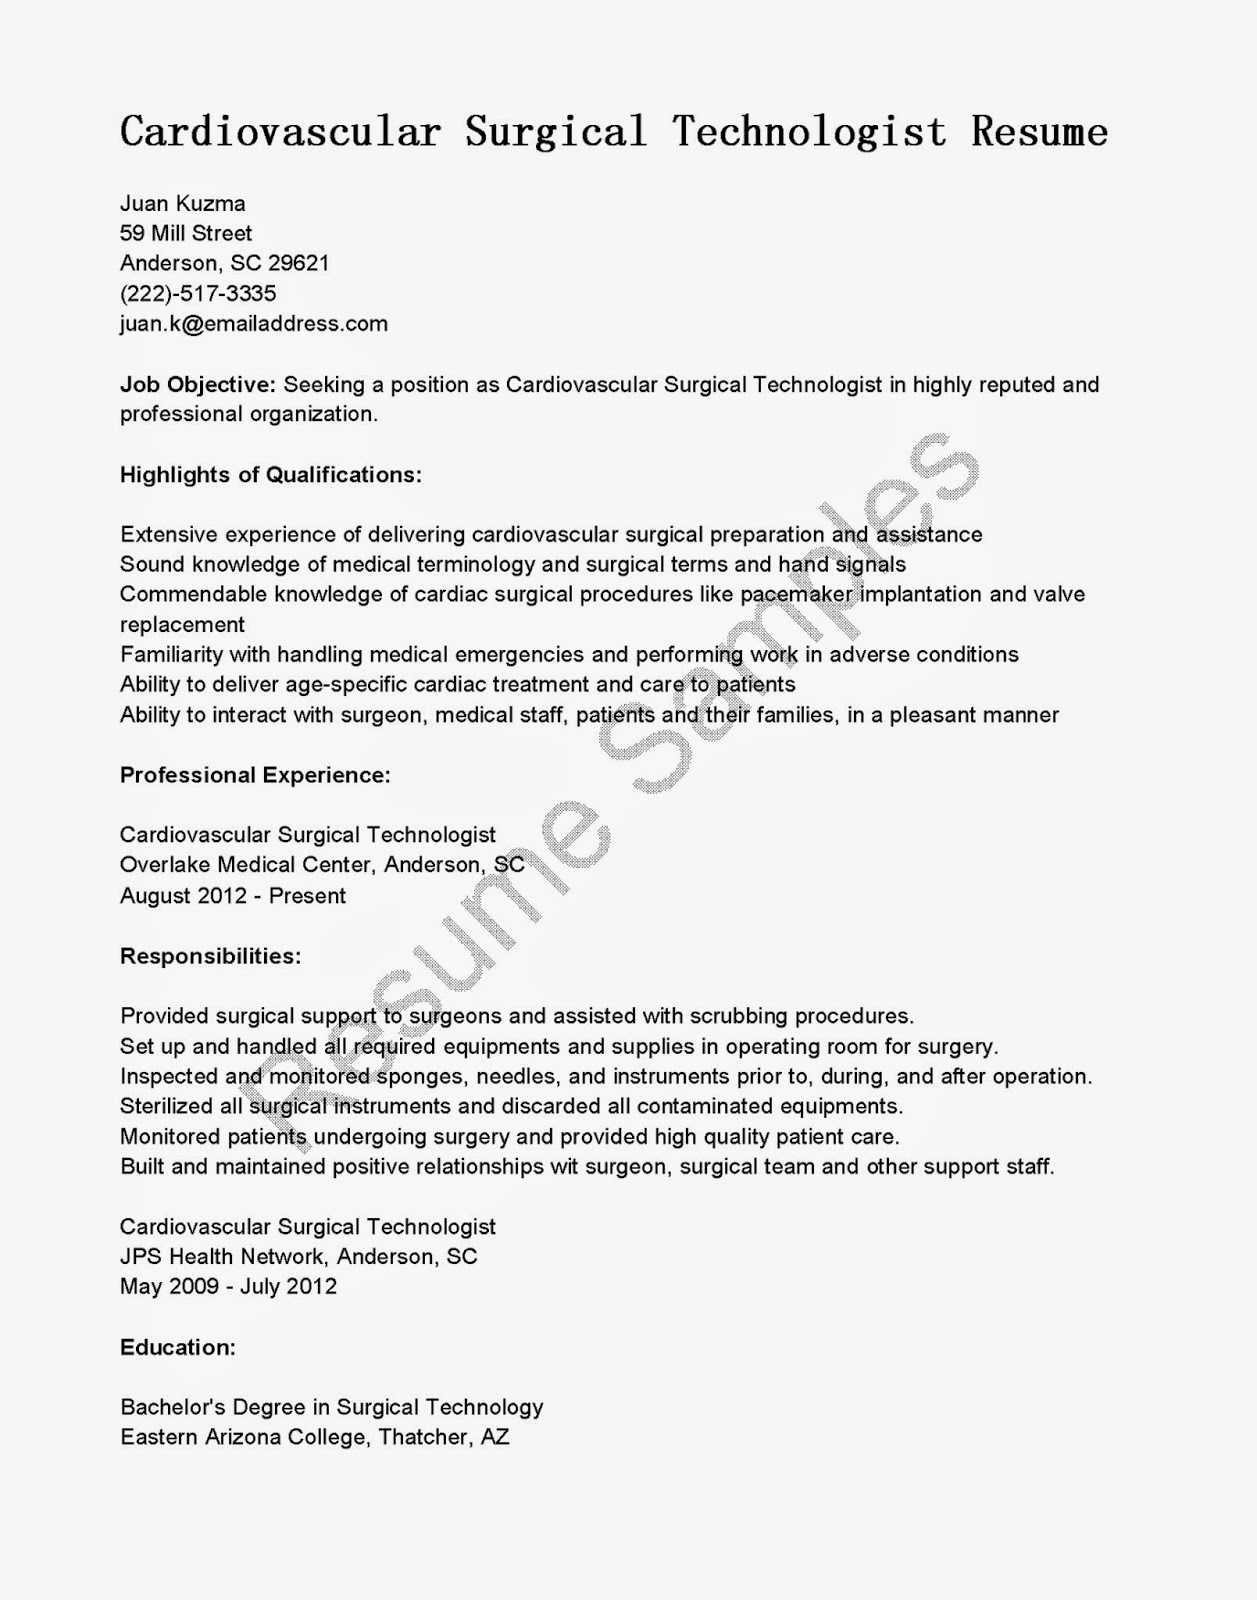 surgical tech resume samples pin surgical tech resume examples image search results pinterest yolande kennedy scenic